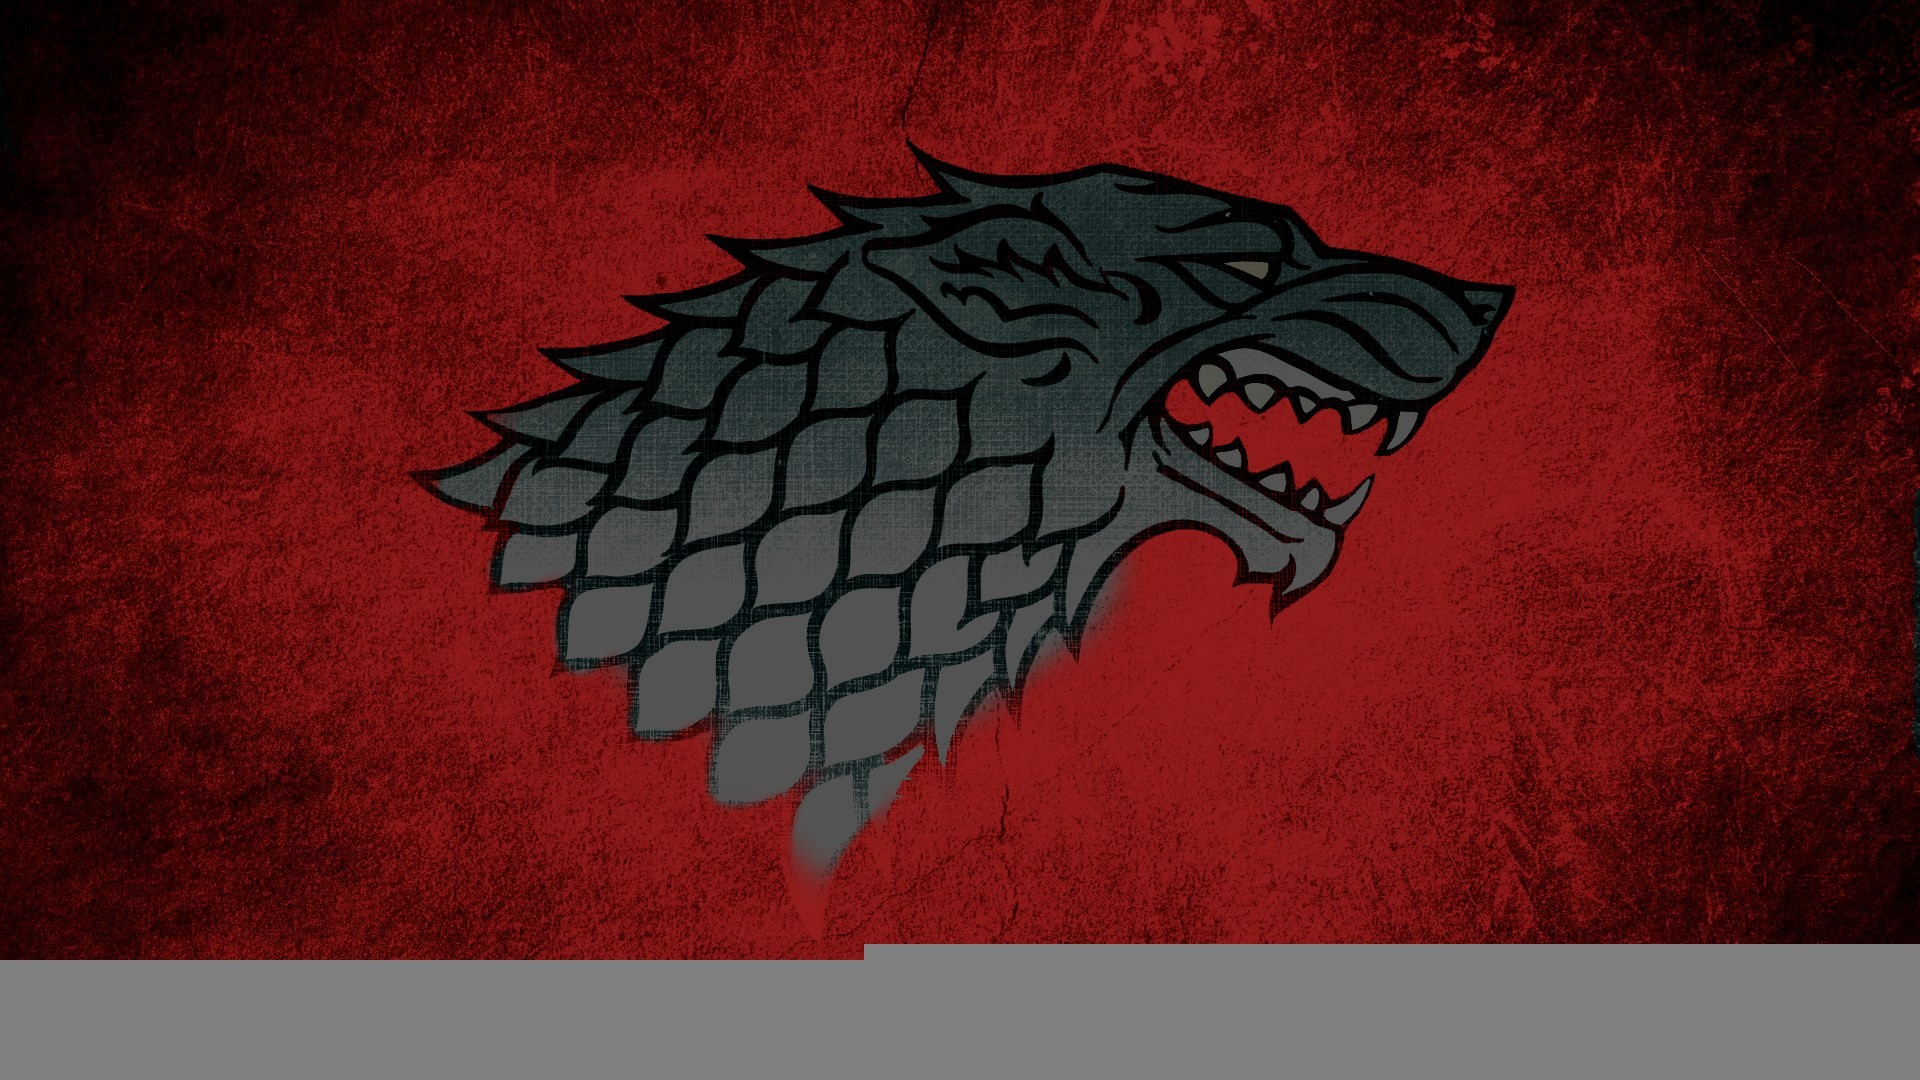 1920x1080, 2017 03 - House Stark Game Of Thrones Wolf - HD Wallpaper